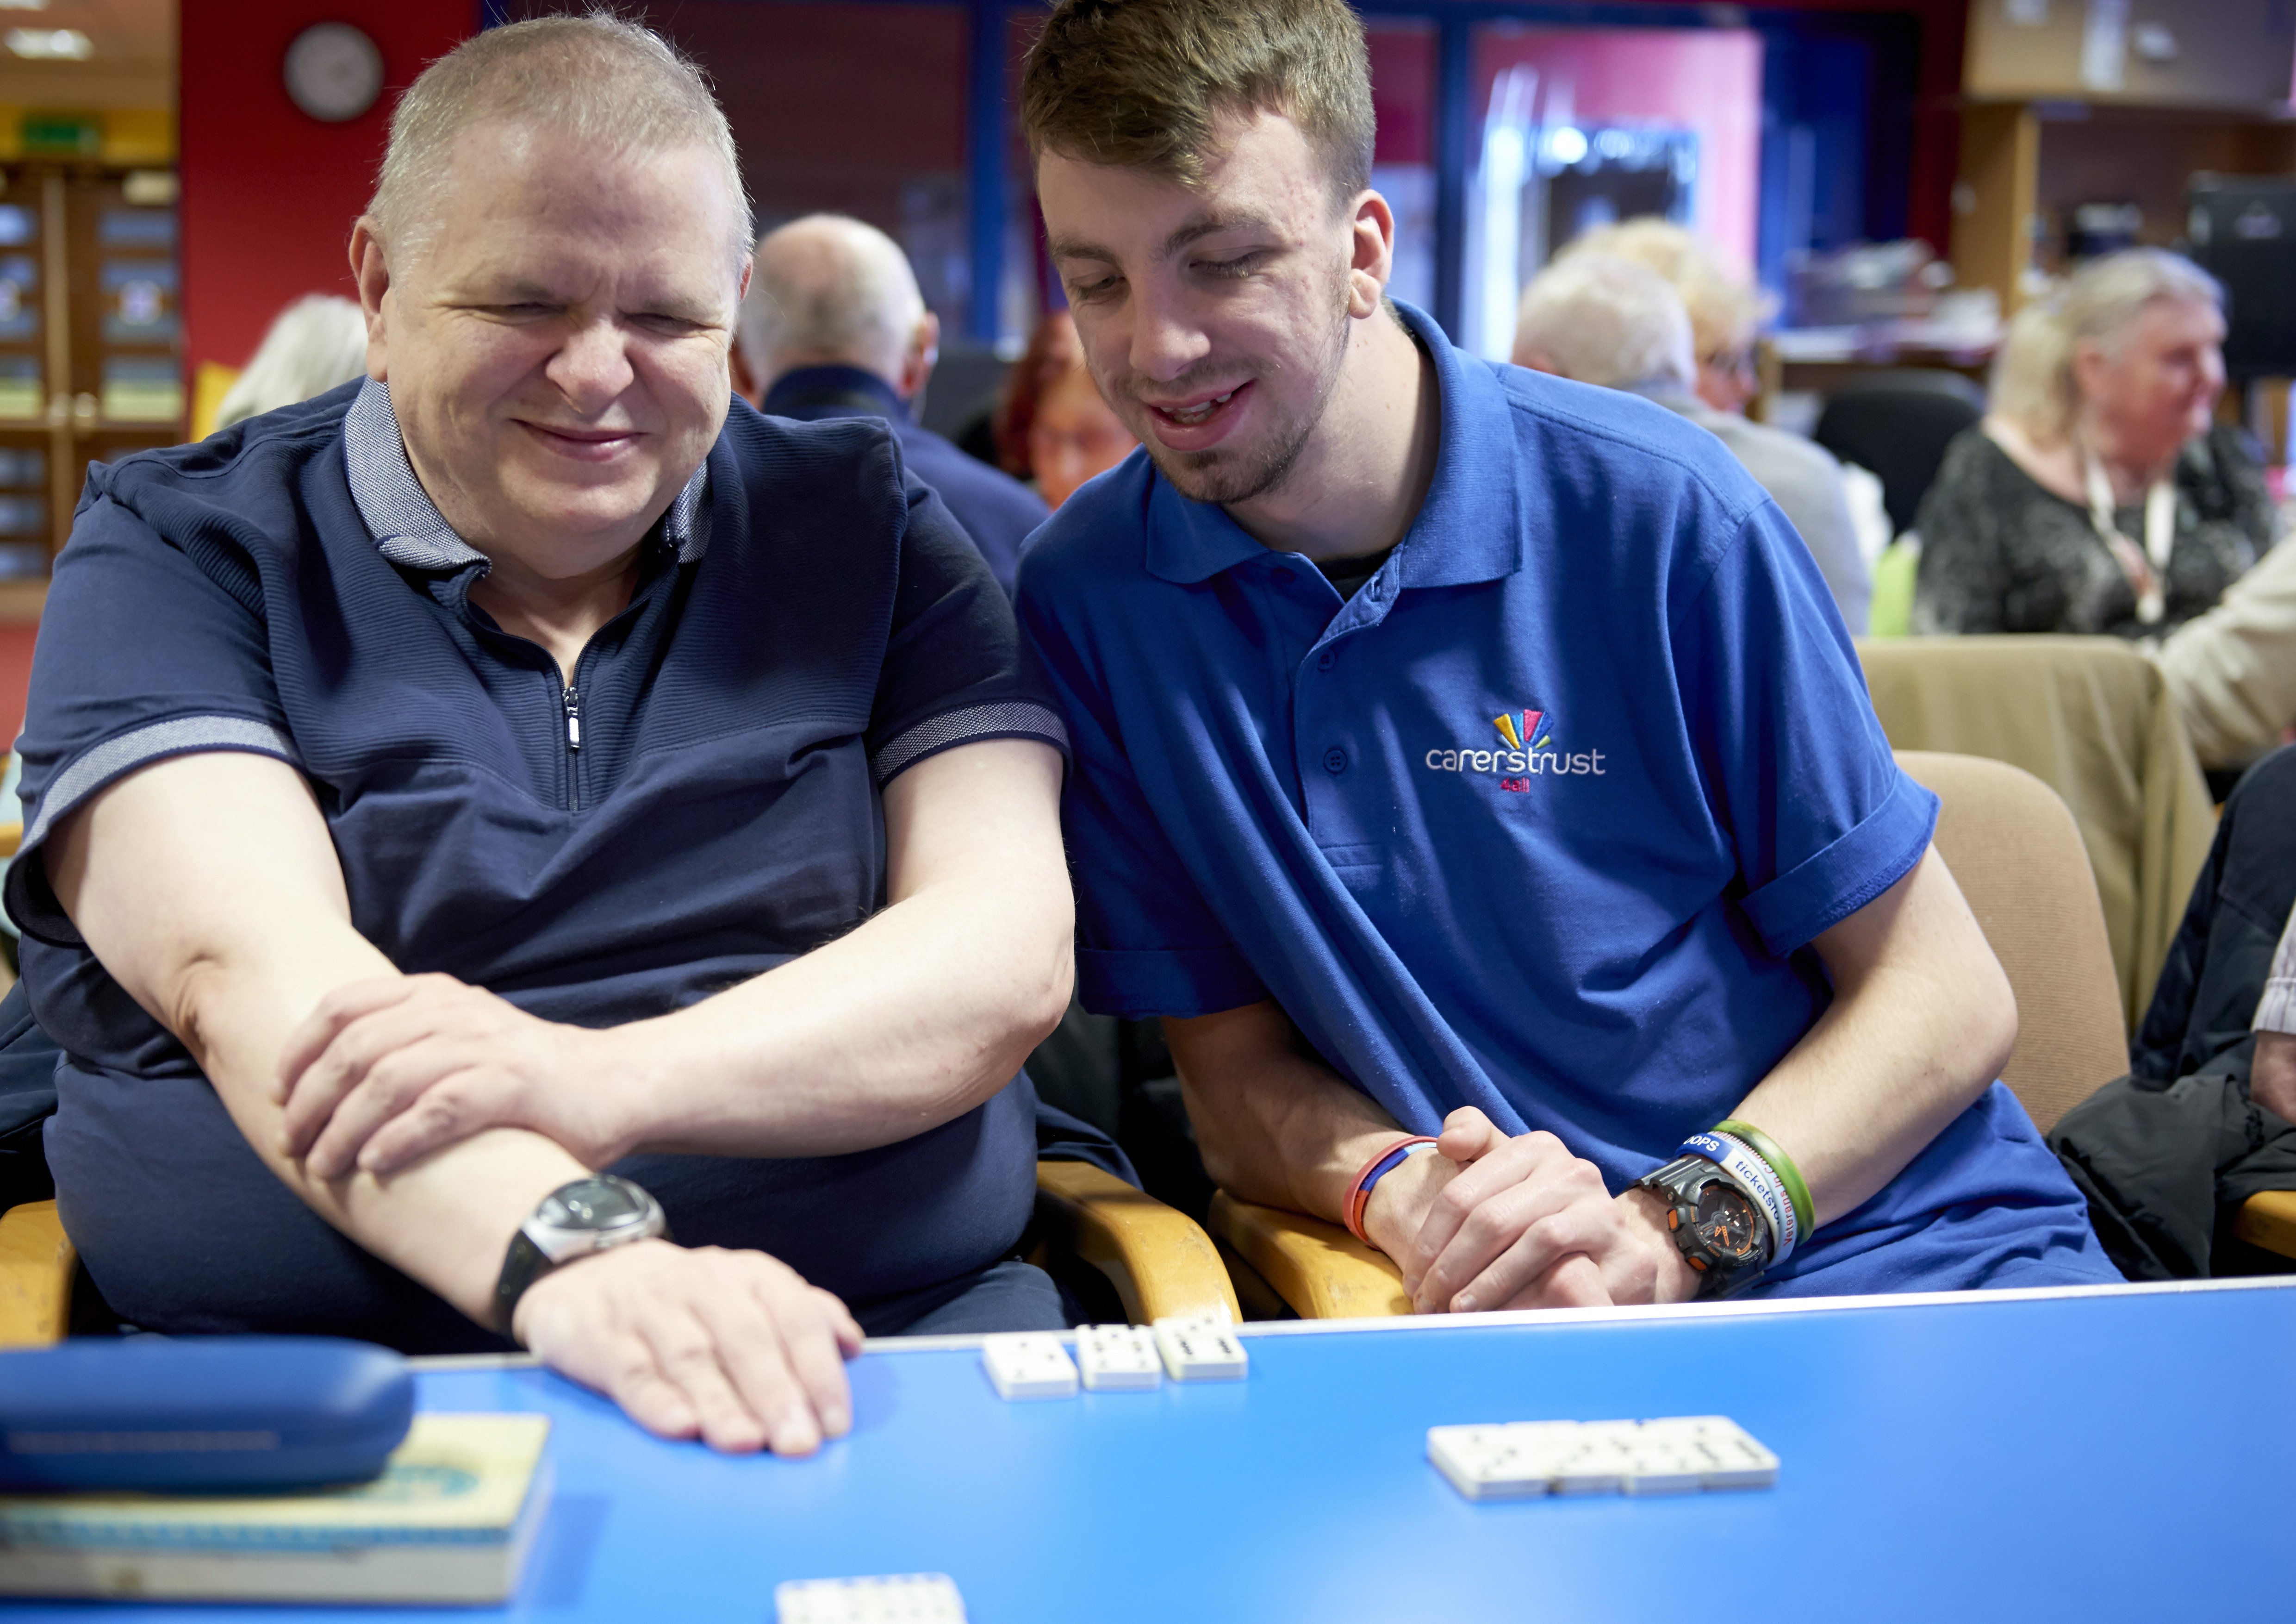 Two young men looking down as they play dominoes in the Trafford hub.